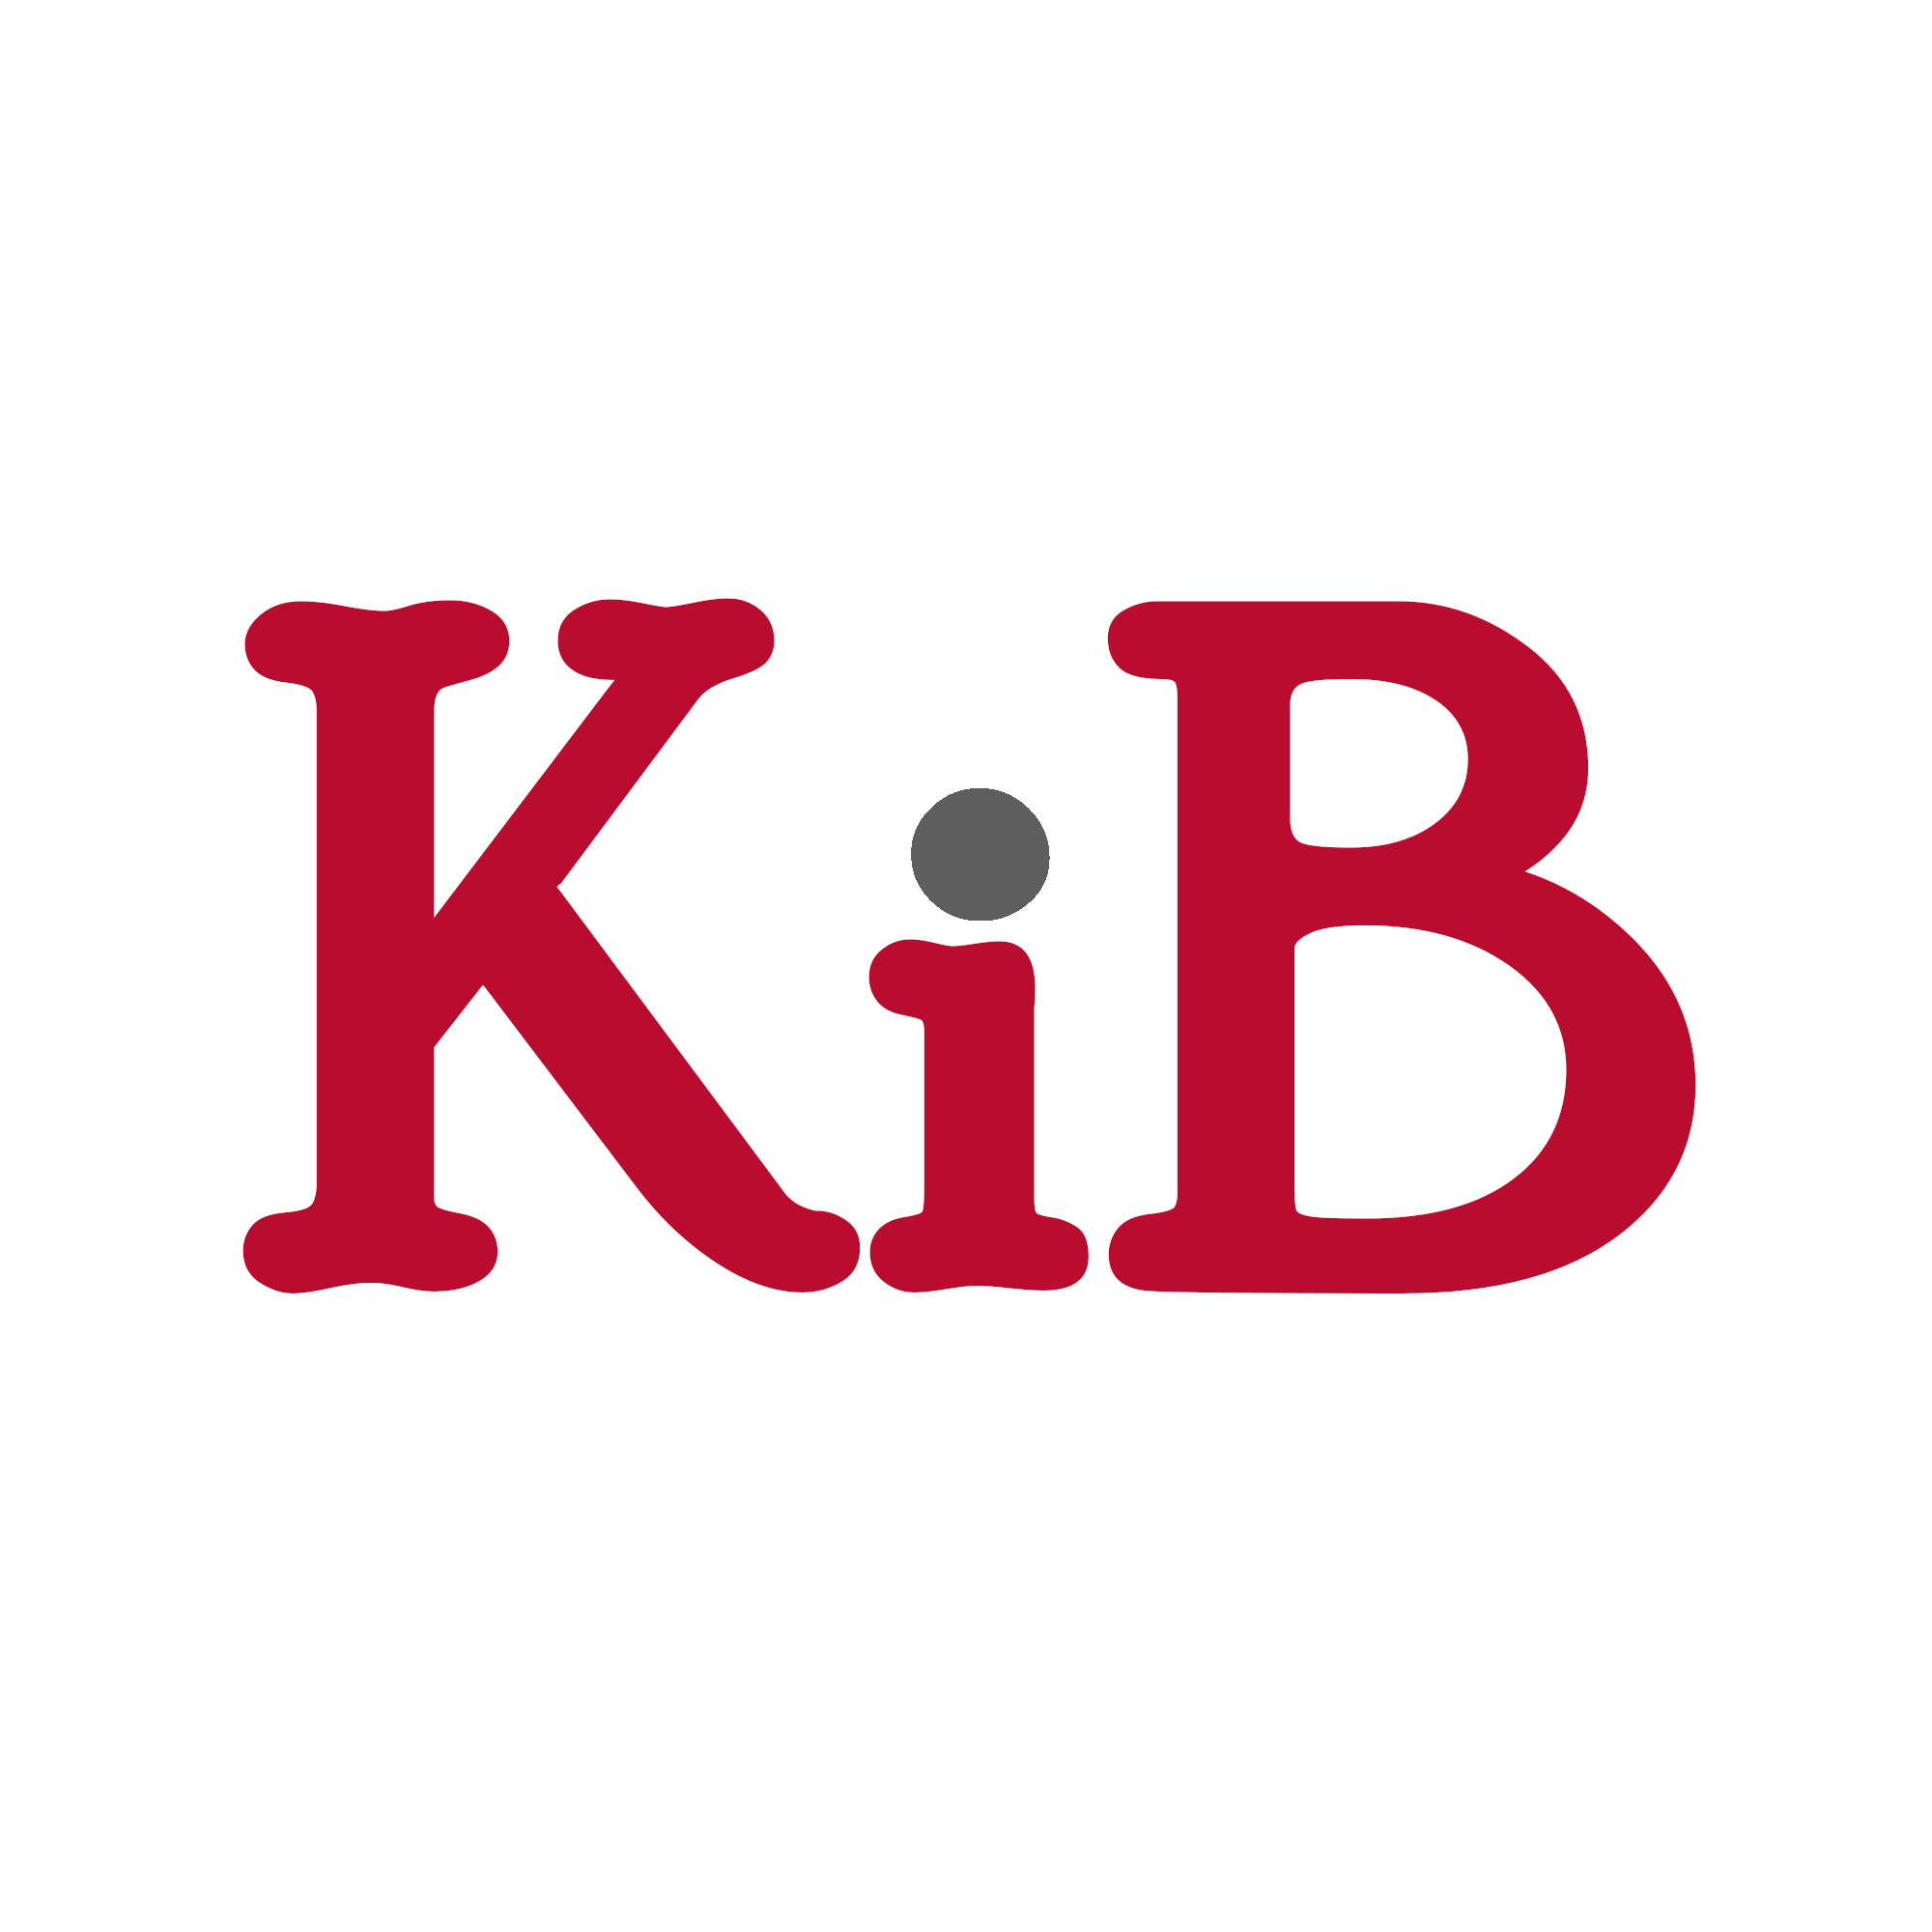 KiB Healthcare Limited